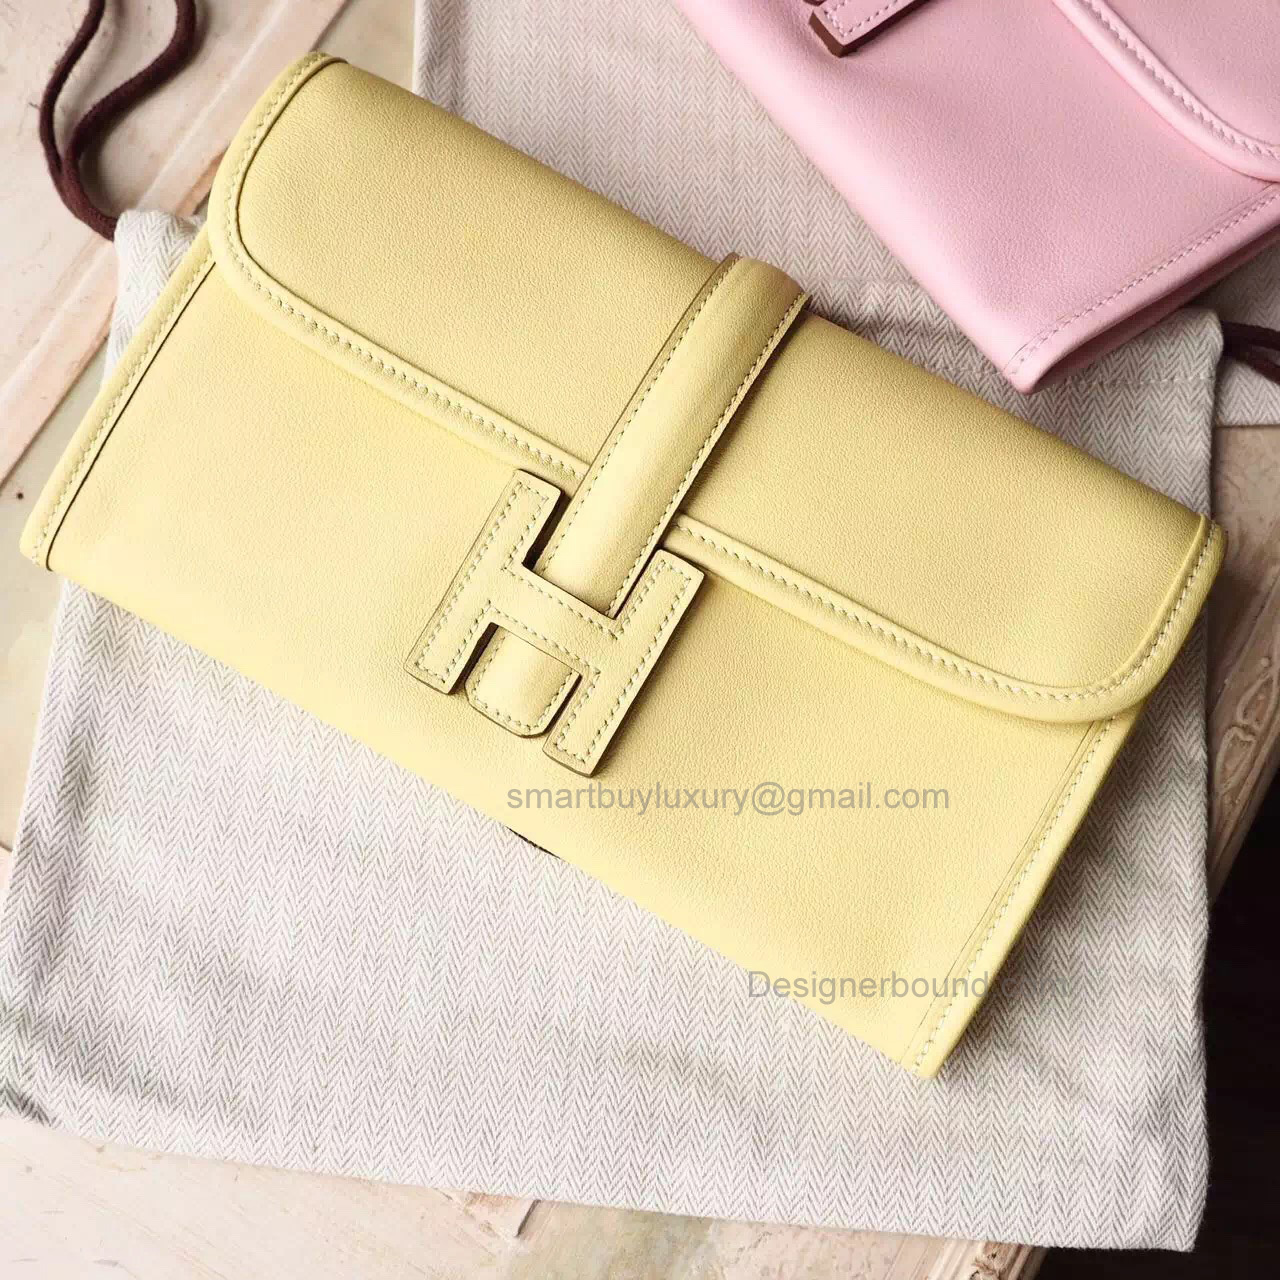 Copy Hermes Jige Duo Mini Clutch Handmade in Jaune Poussin 1z Swift Calfskin